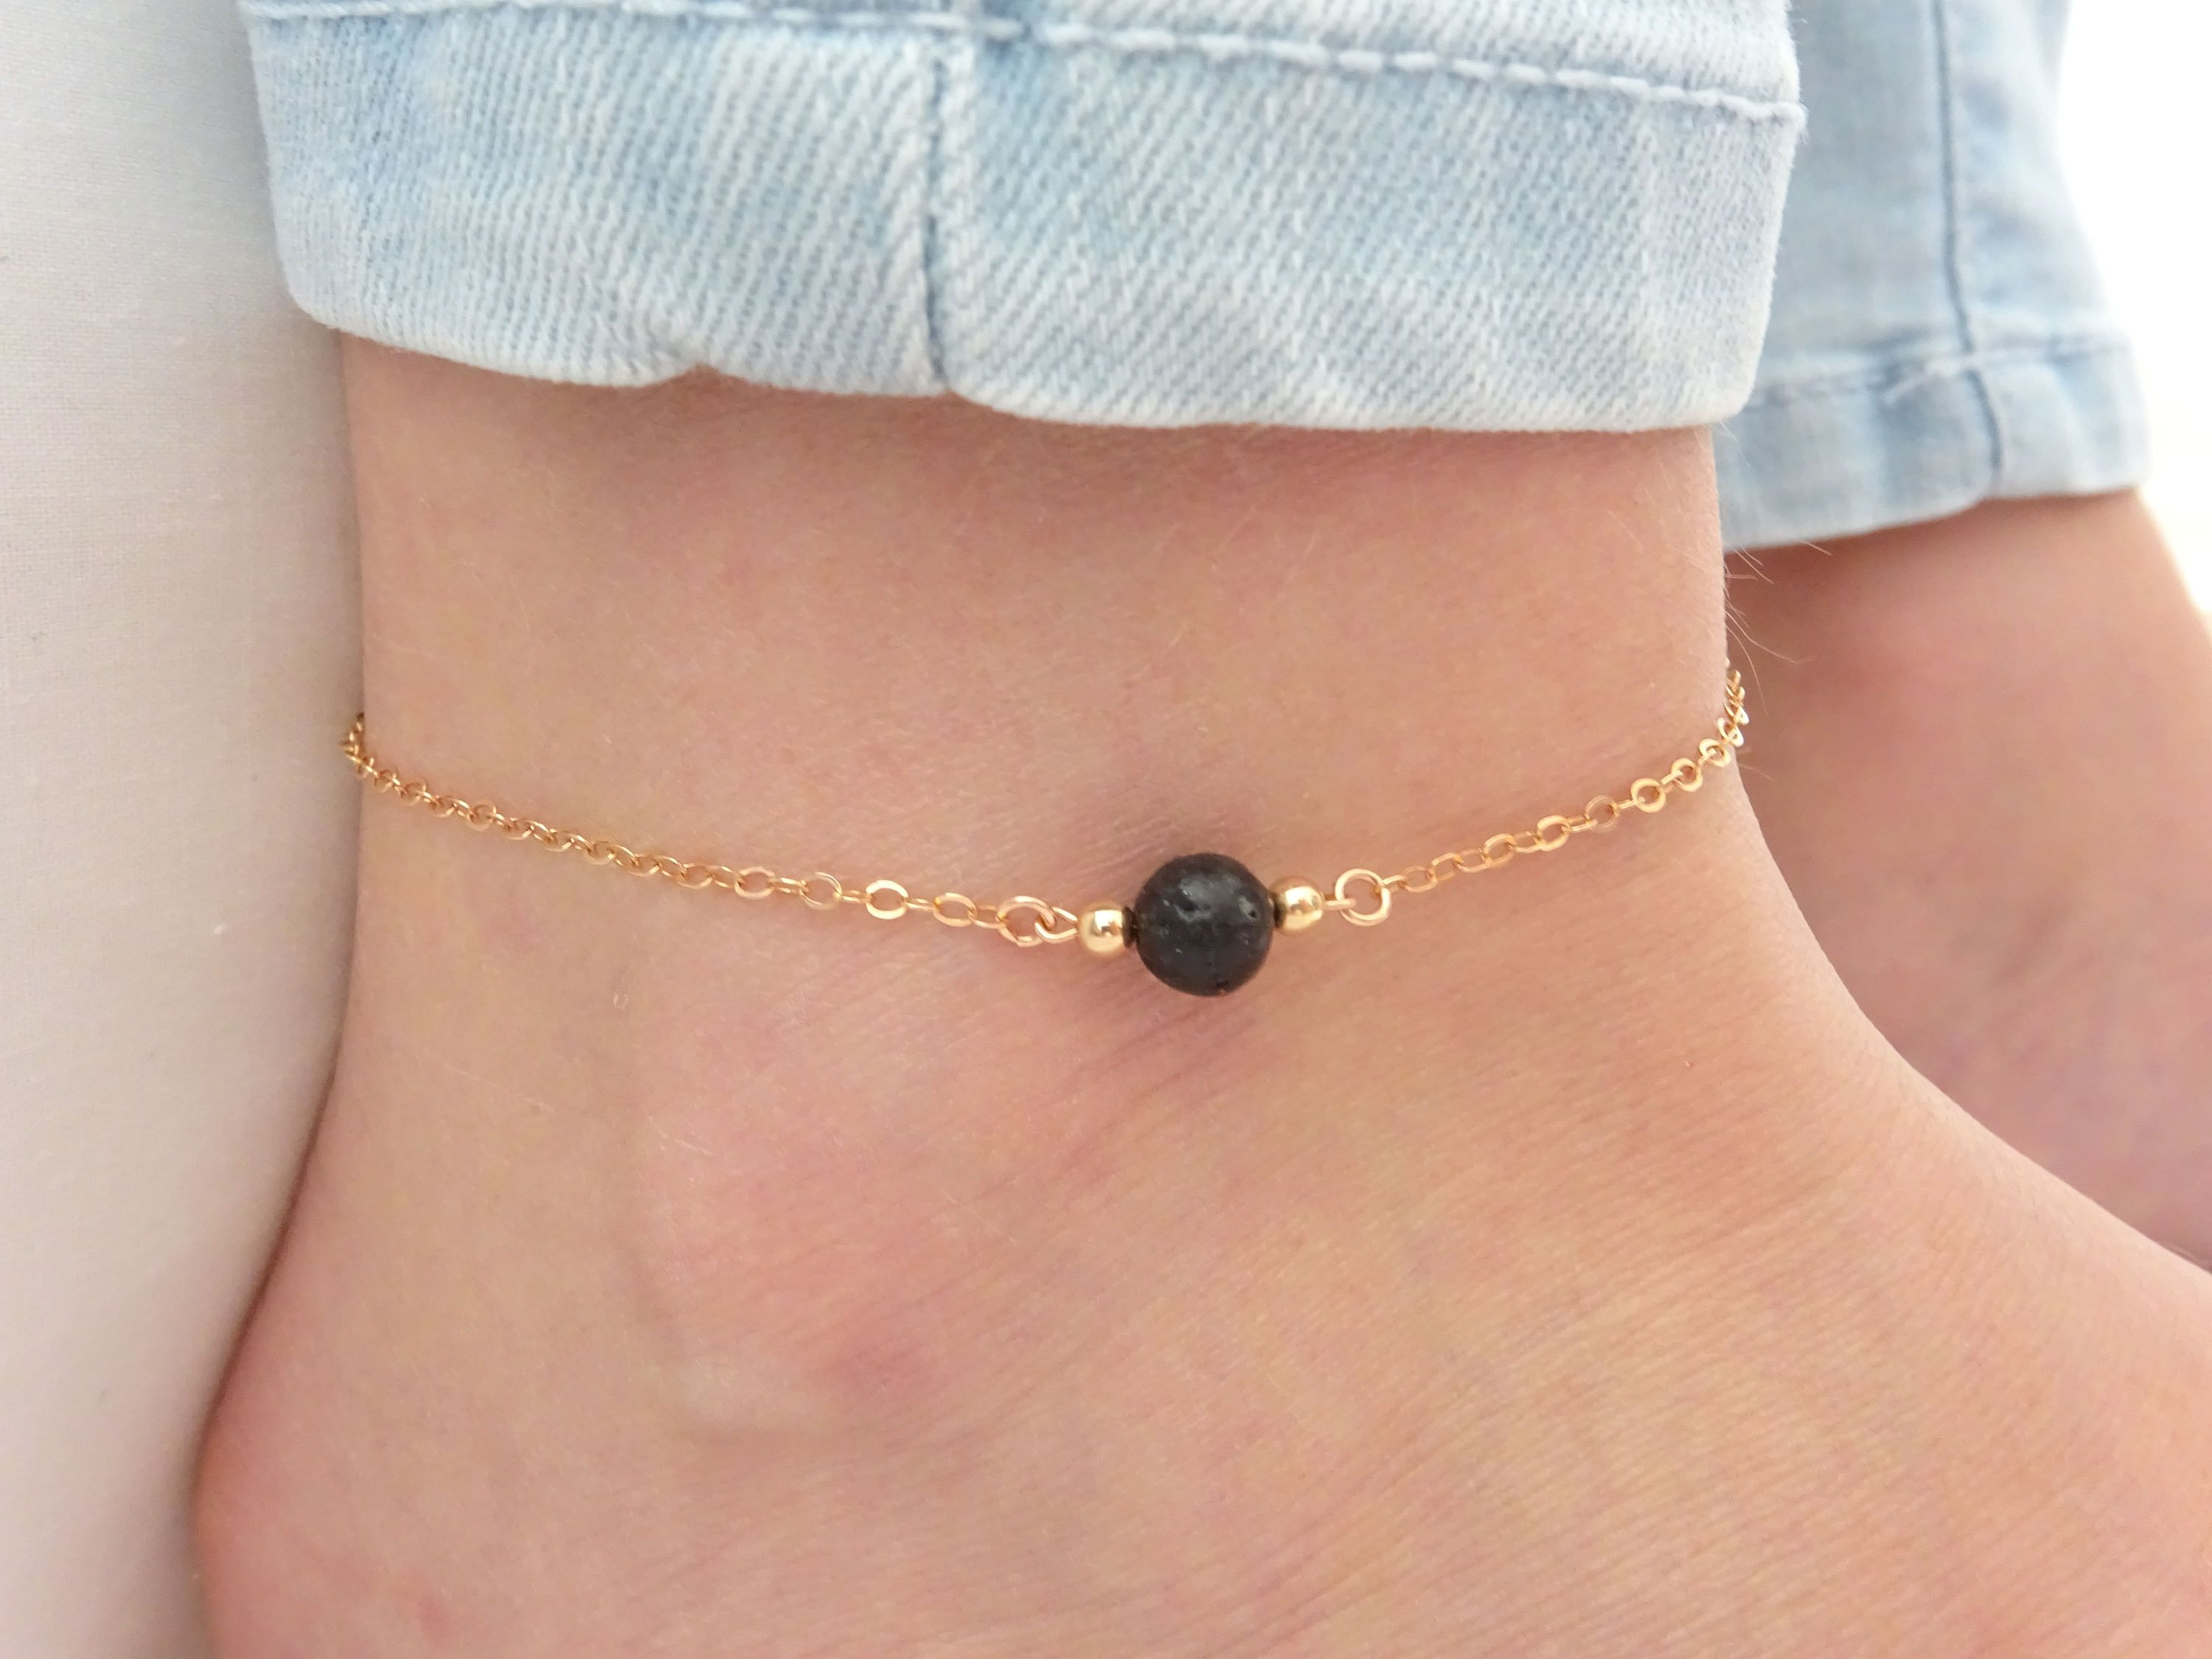 sterling excited plated pin share shop addition bracelet the etsy anklet my to silver latest chain gold anklets